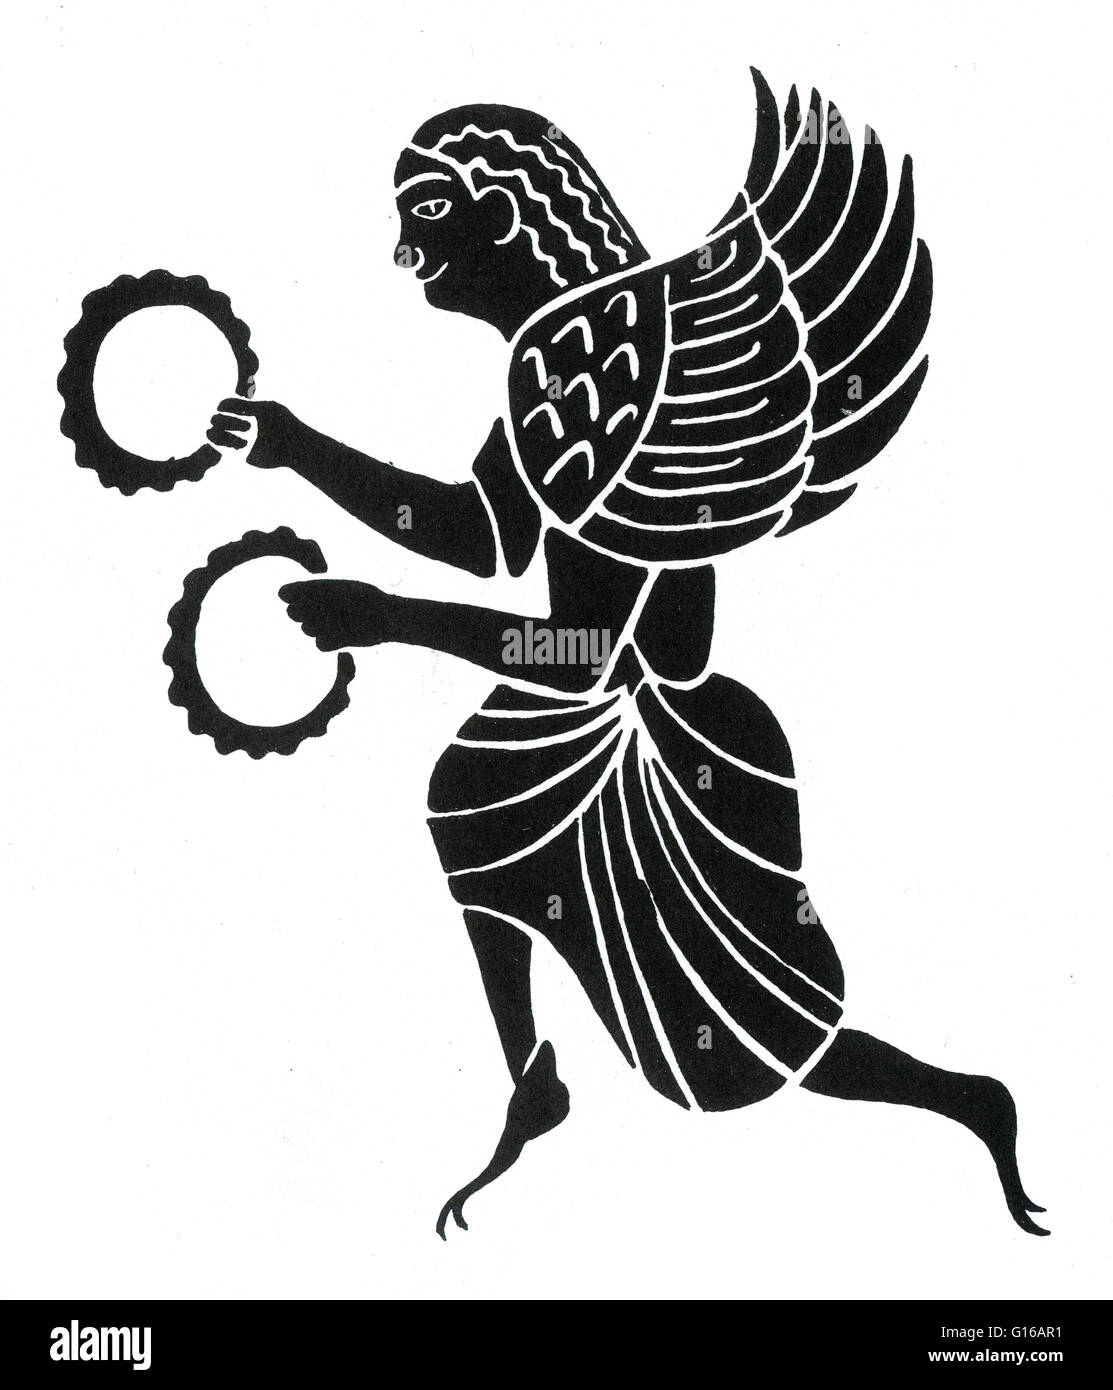 Ancient Greece, Harpy, from an amphora, 6th century BC. In earlier versions of Greek myth, Harpies were described - Stock Image